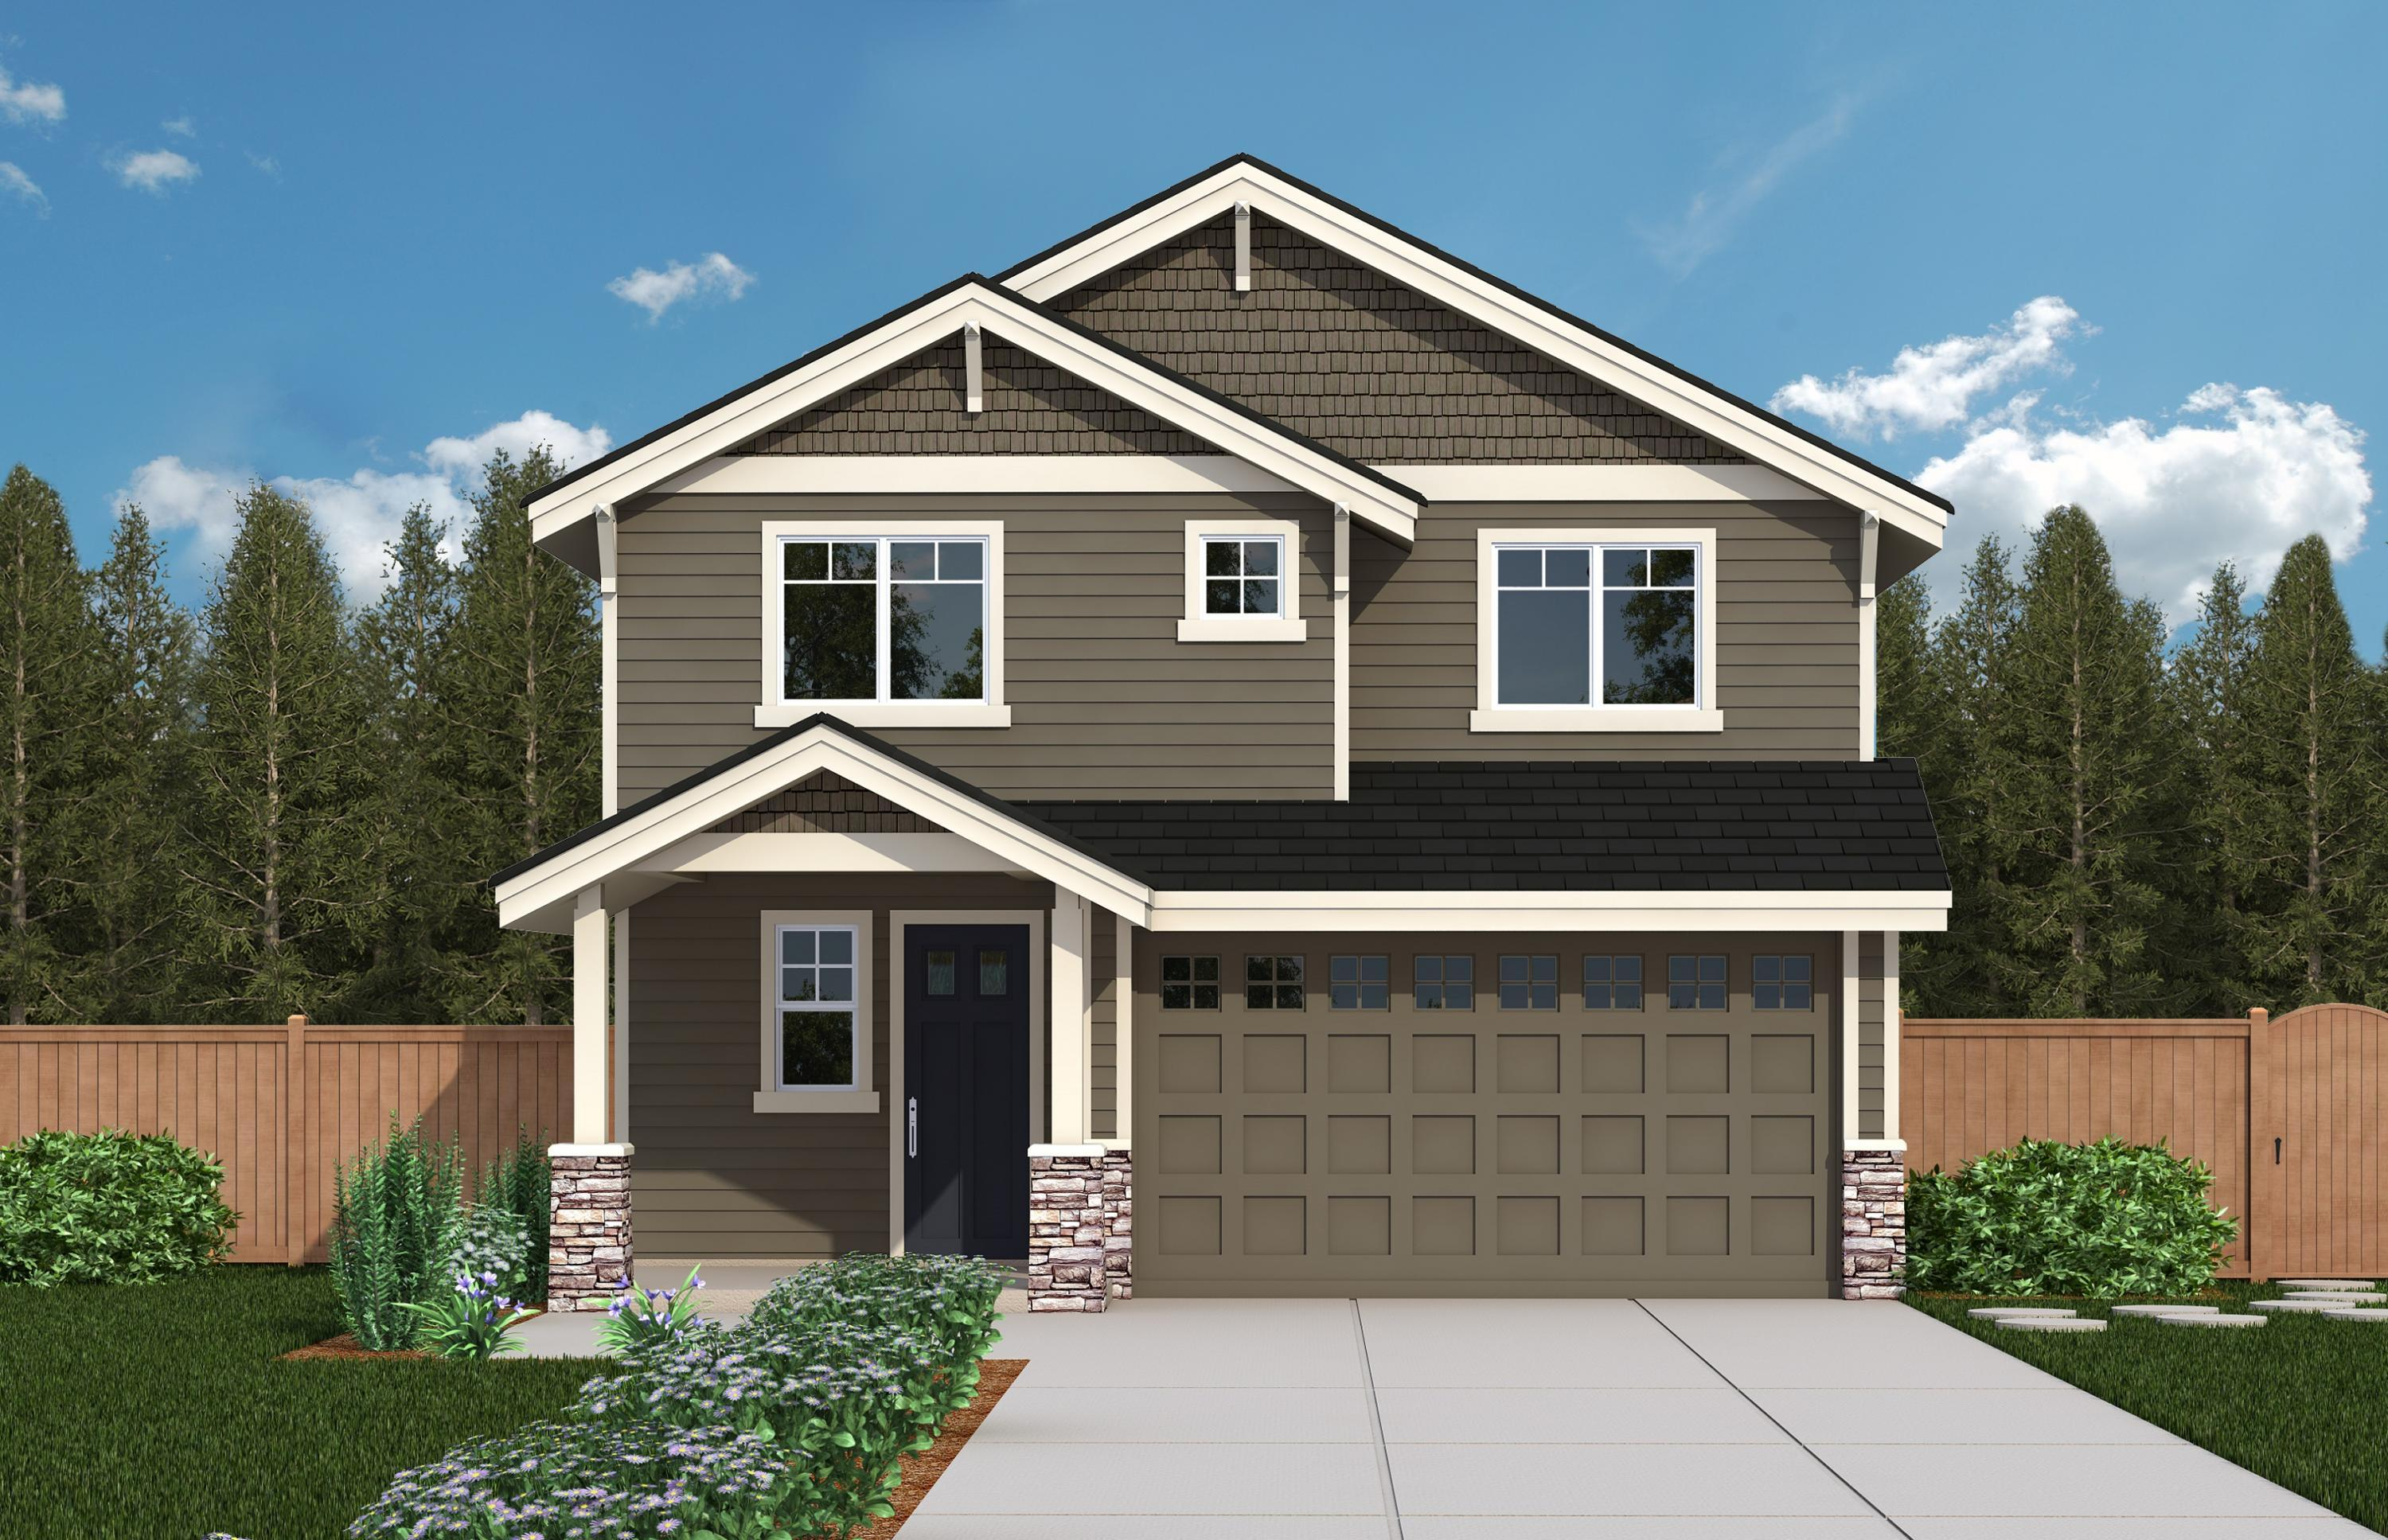 Single Family for Sale at Canyon Terrace - Ct 3082a Se 192nd St &Amp; 124th Ave Se Renton, Washington 98058 United States